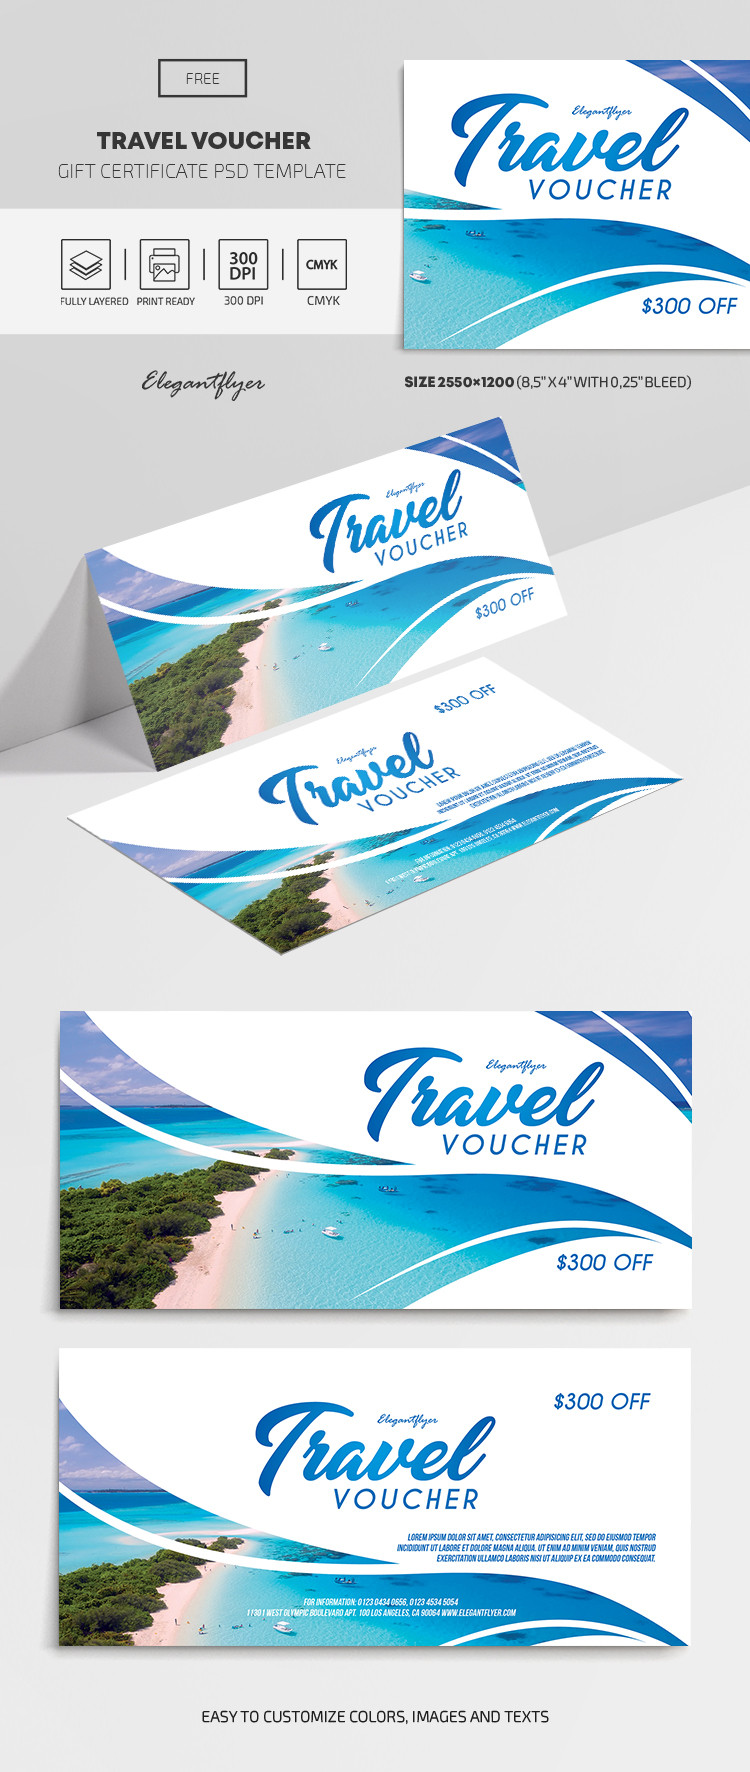 Travel Voucher – Free Gift Certificate Template – by